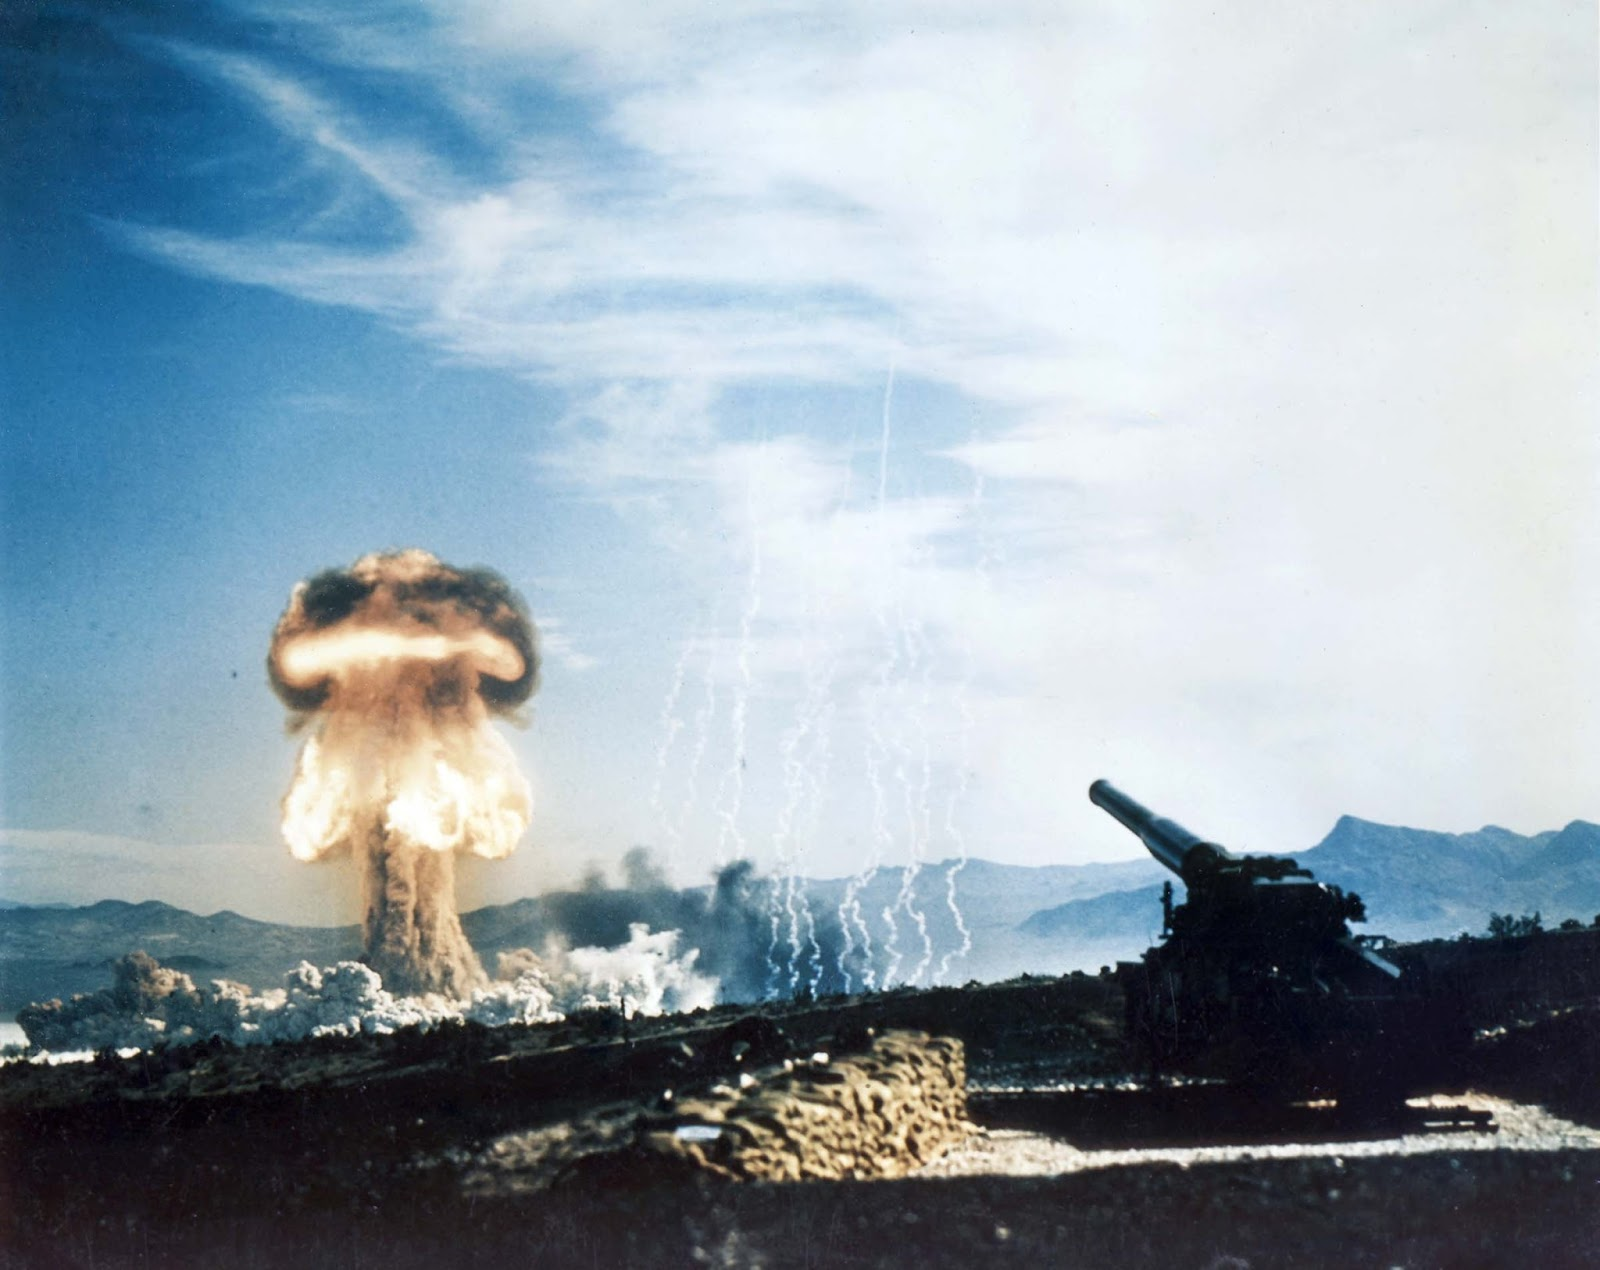 The Grable test, with the Atomic Annie artillery piece used to fire the warhead.